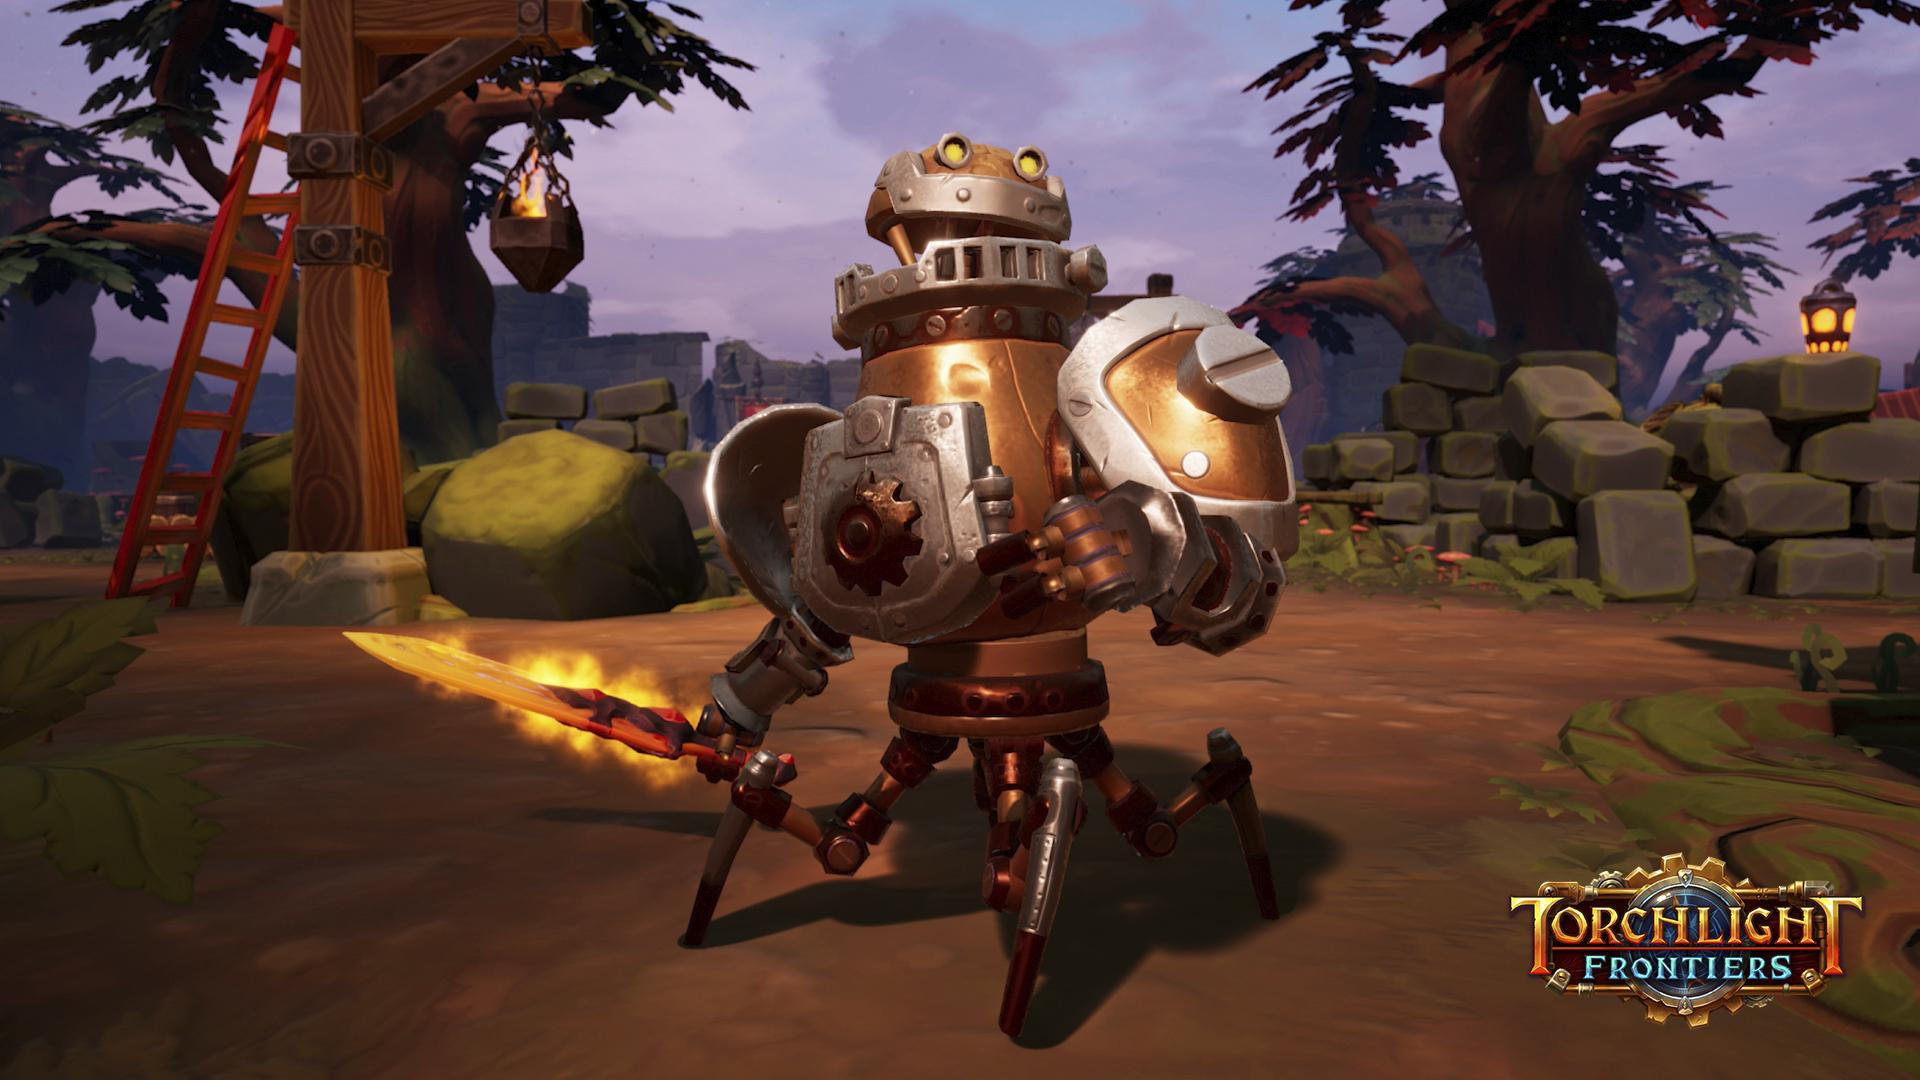 Torchlight Frontiers Relic Weapons